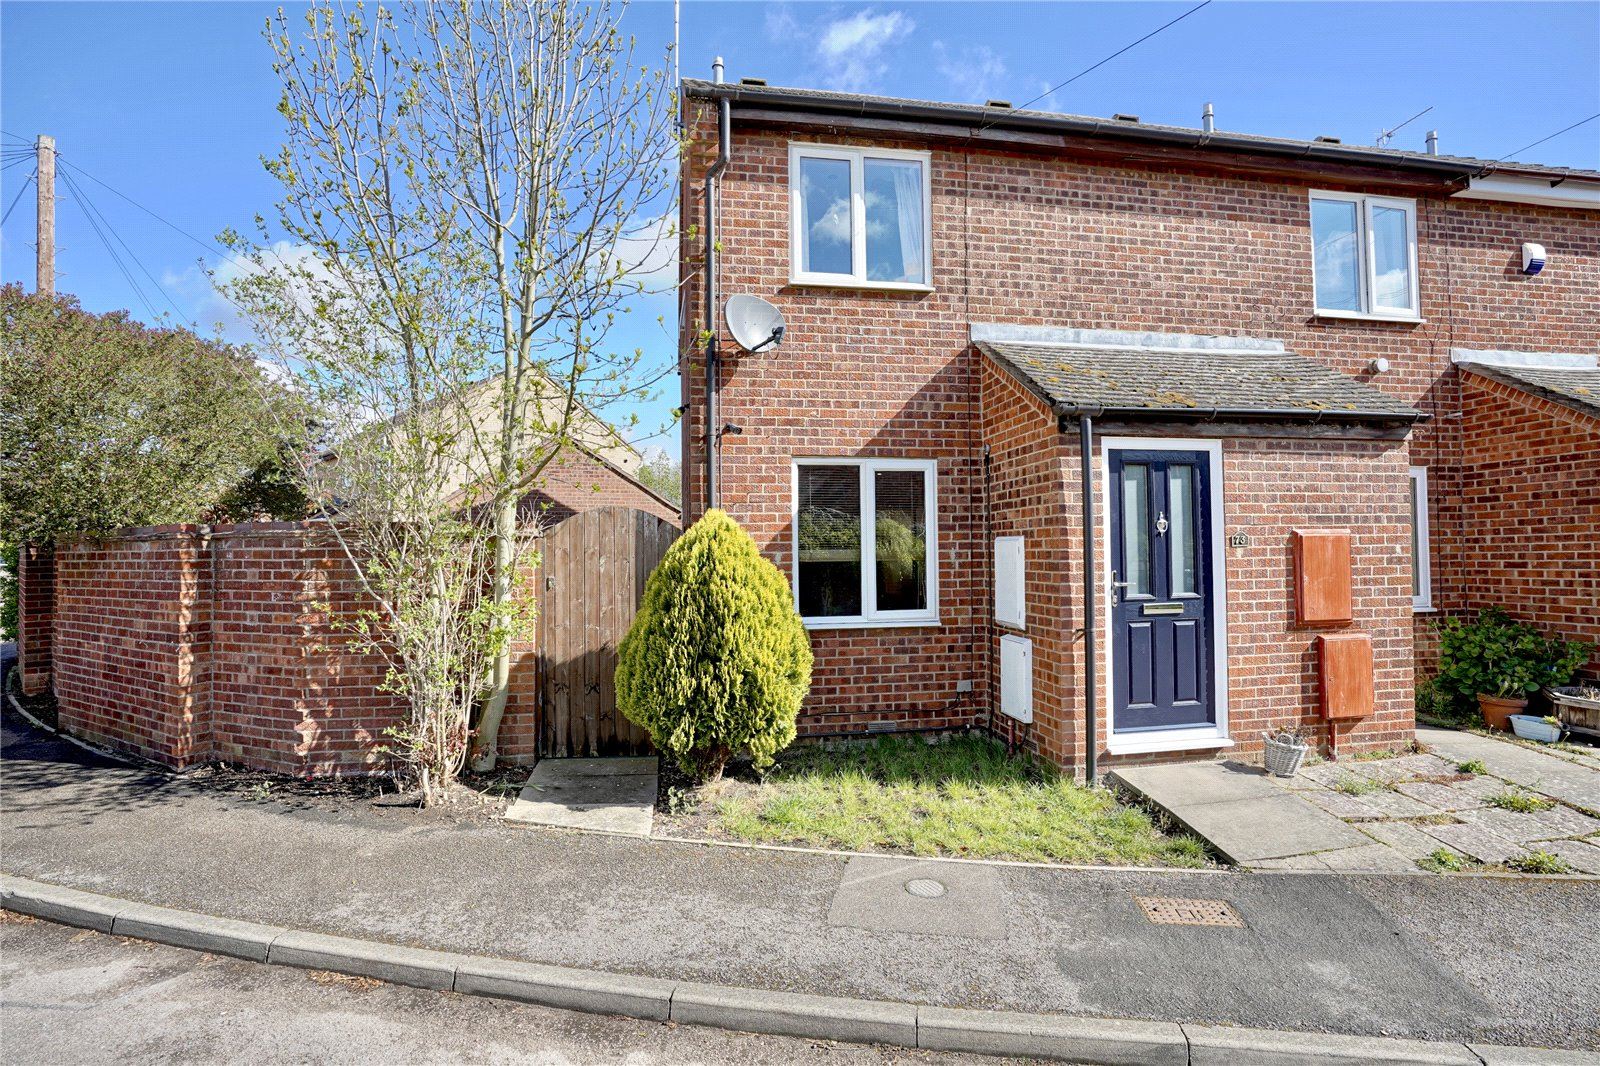 2 bed house for sale in Buckden, PE19 5TW, PE19